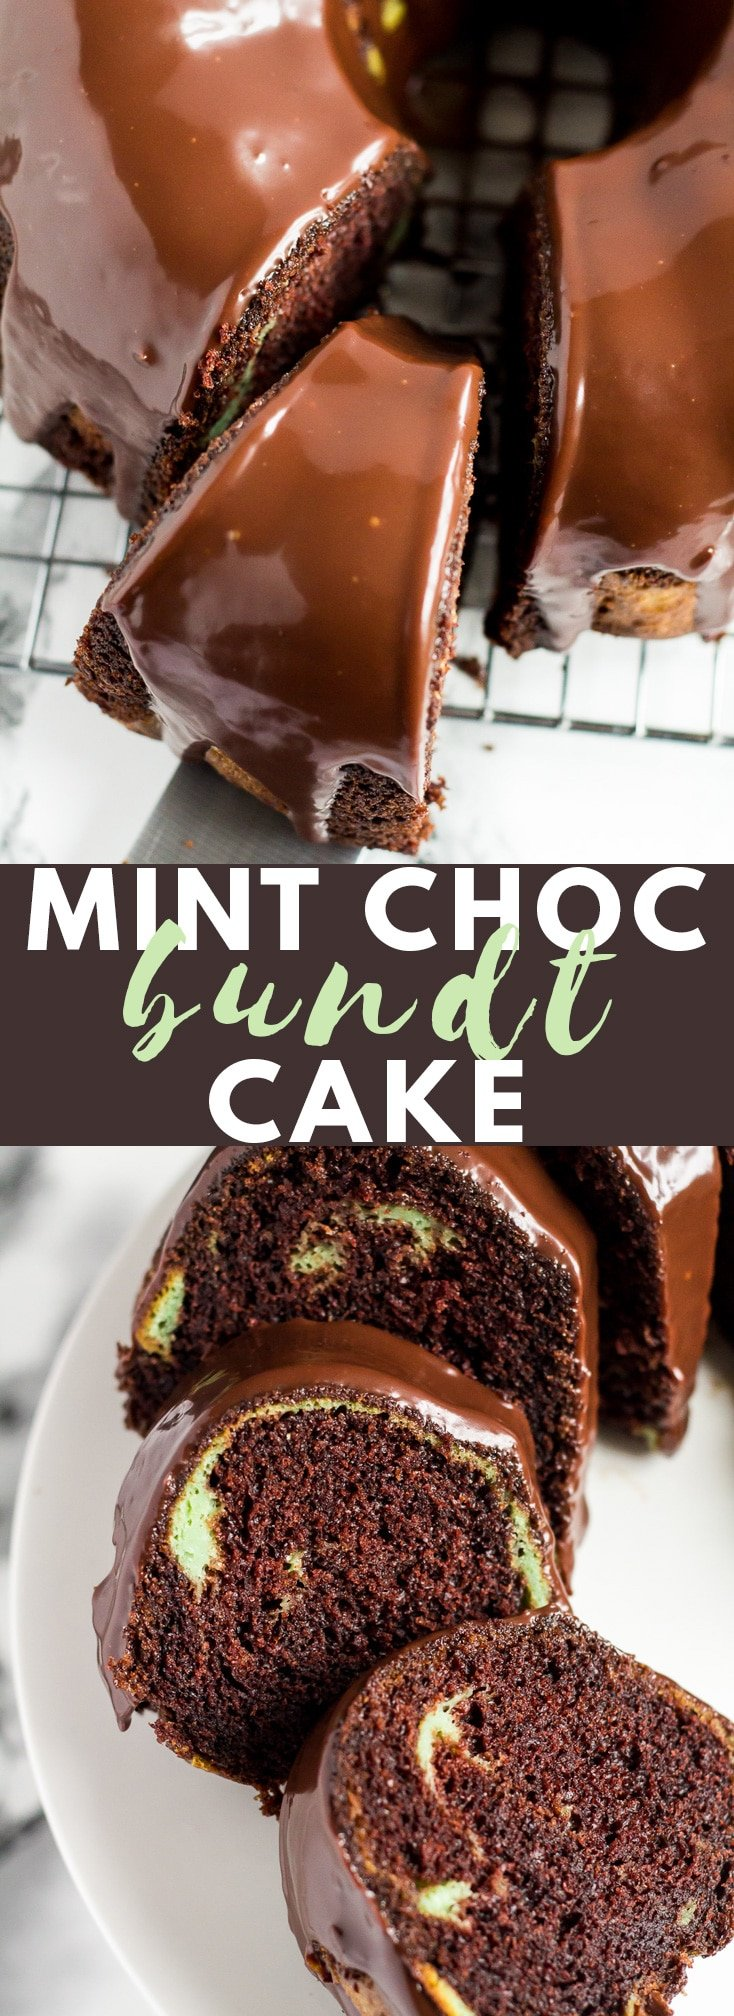 Mint Chocolate Bundt Cake - Deliciously moist and fluffy chocolate bundt cake infused with mint, and drizzled with a creamy chocolate ganache! #mint #chocolate #bundtcake #chocolatecake #cakerecipes